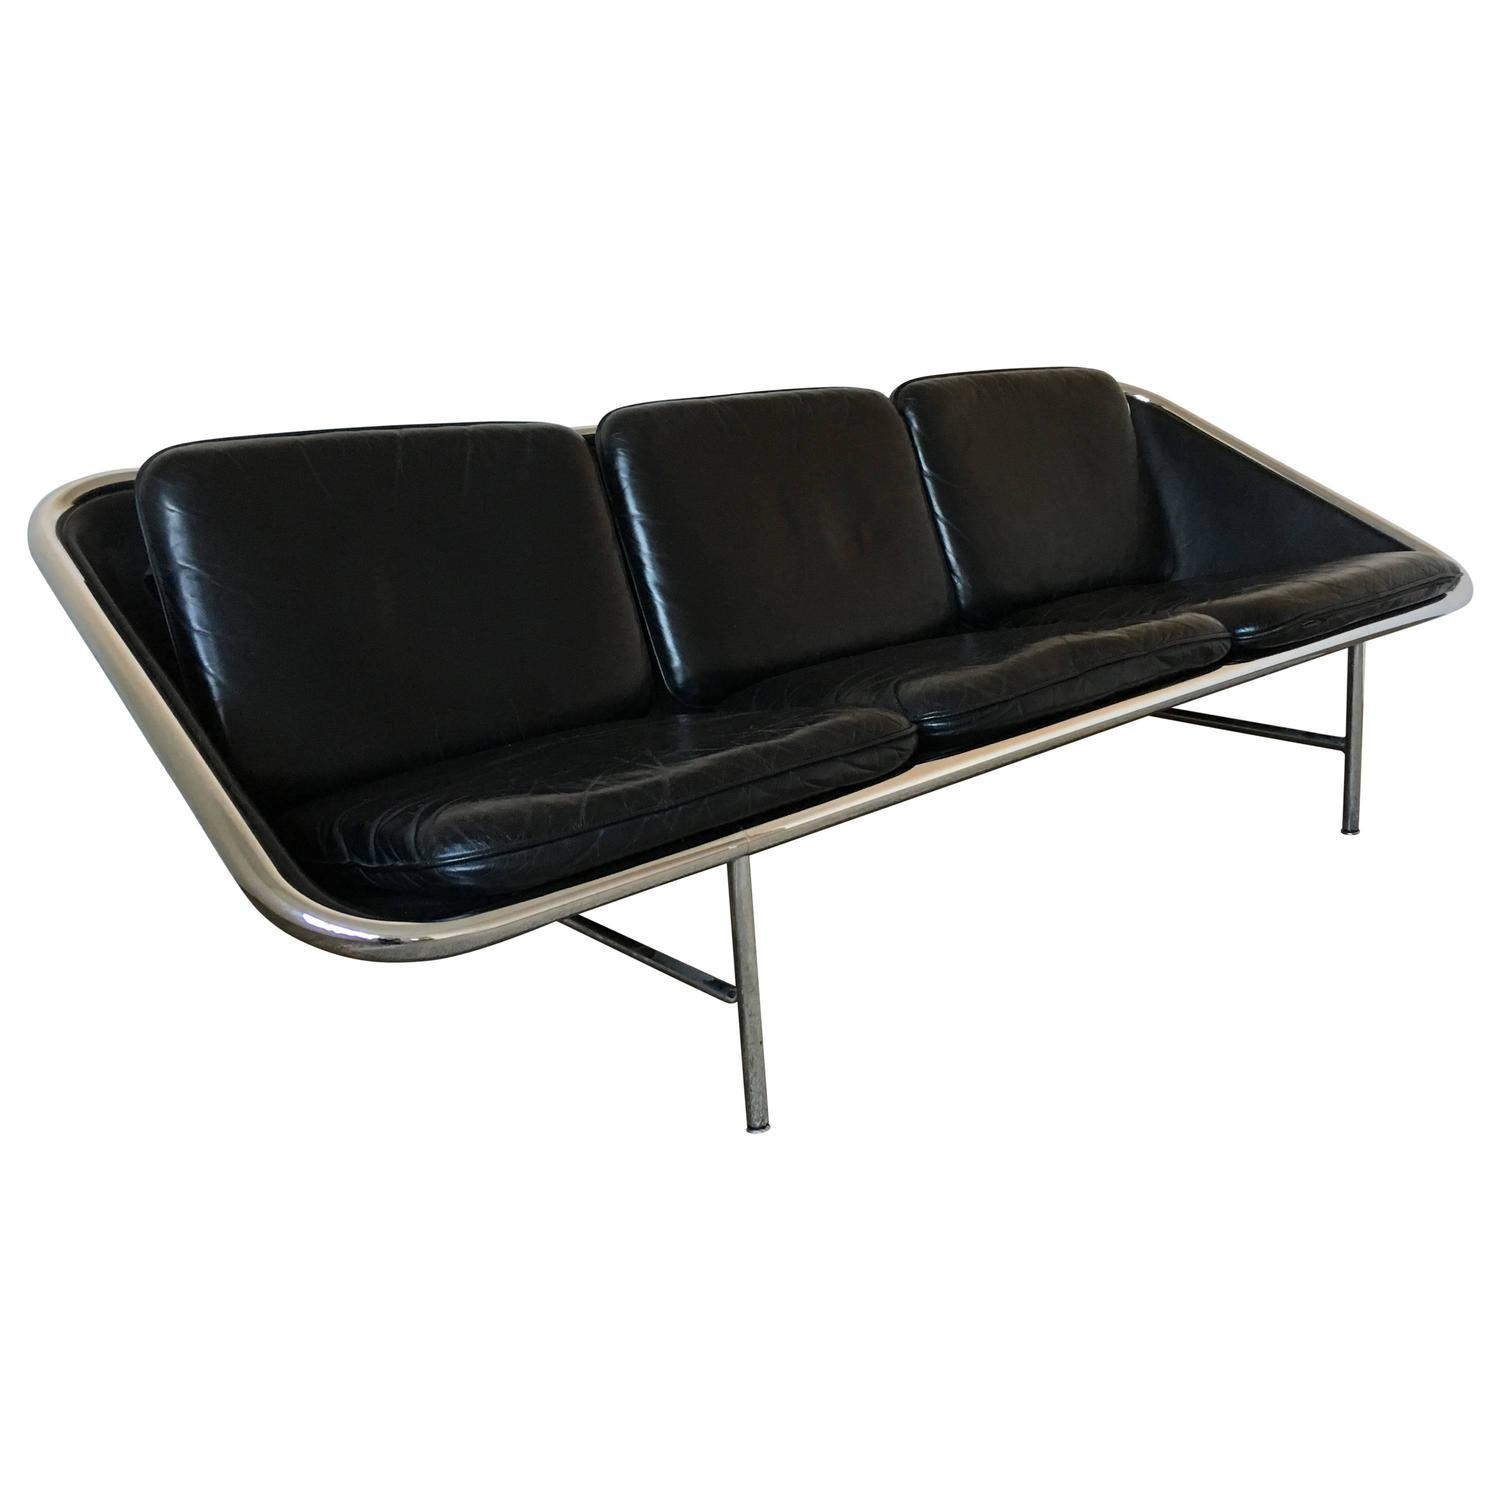 George Nelson Black Leather Sling Sofa, Herman Miller, Circa 1960 Pertaining To George Nelson Sofas (Image 3 of 20)